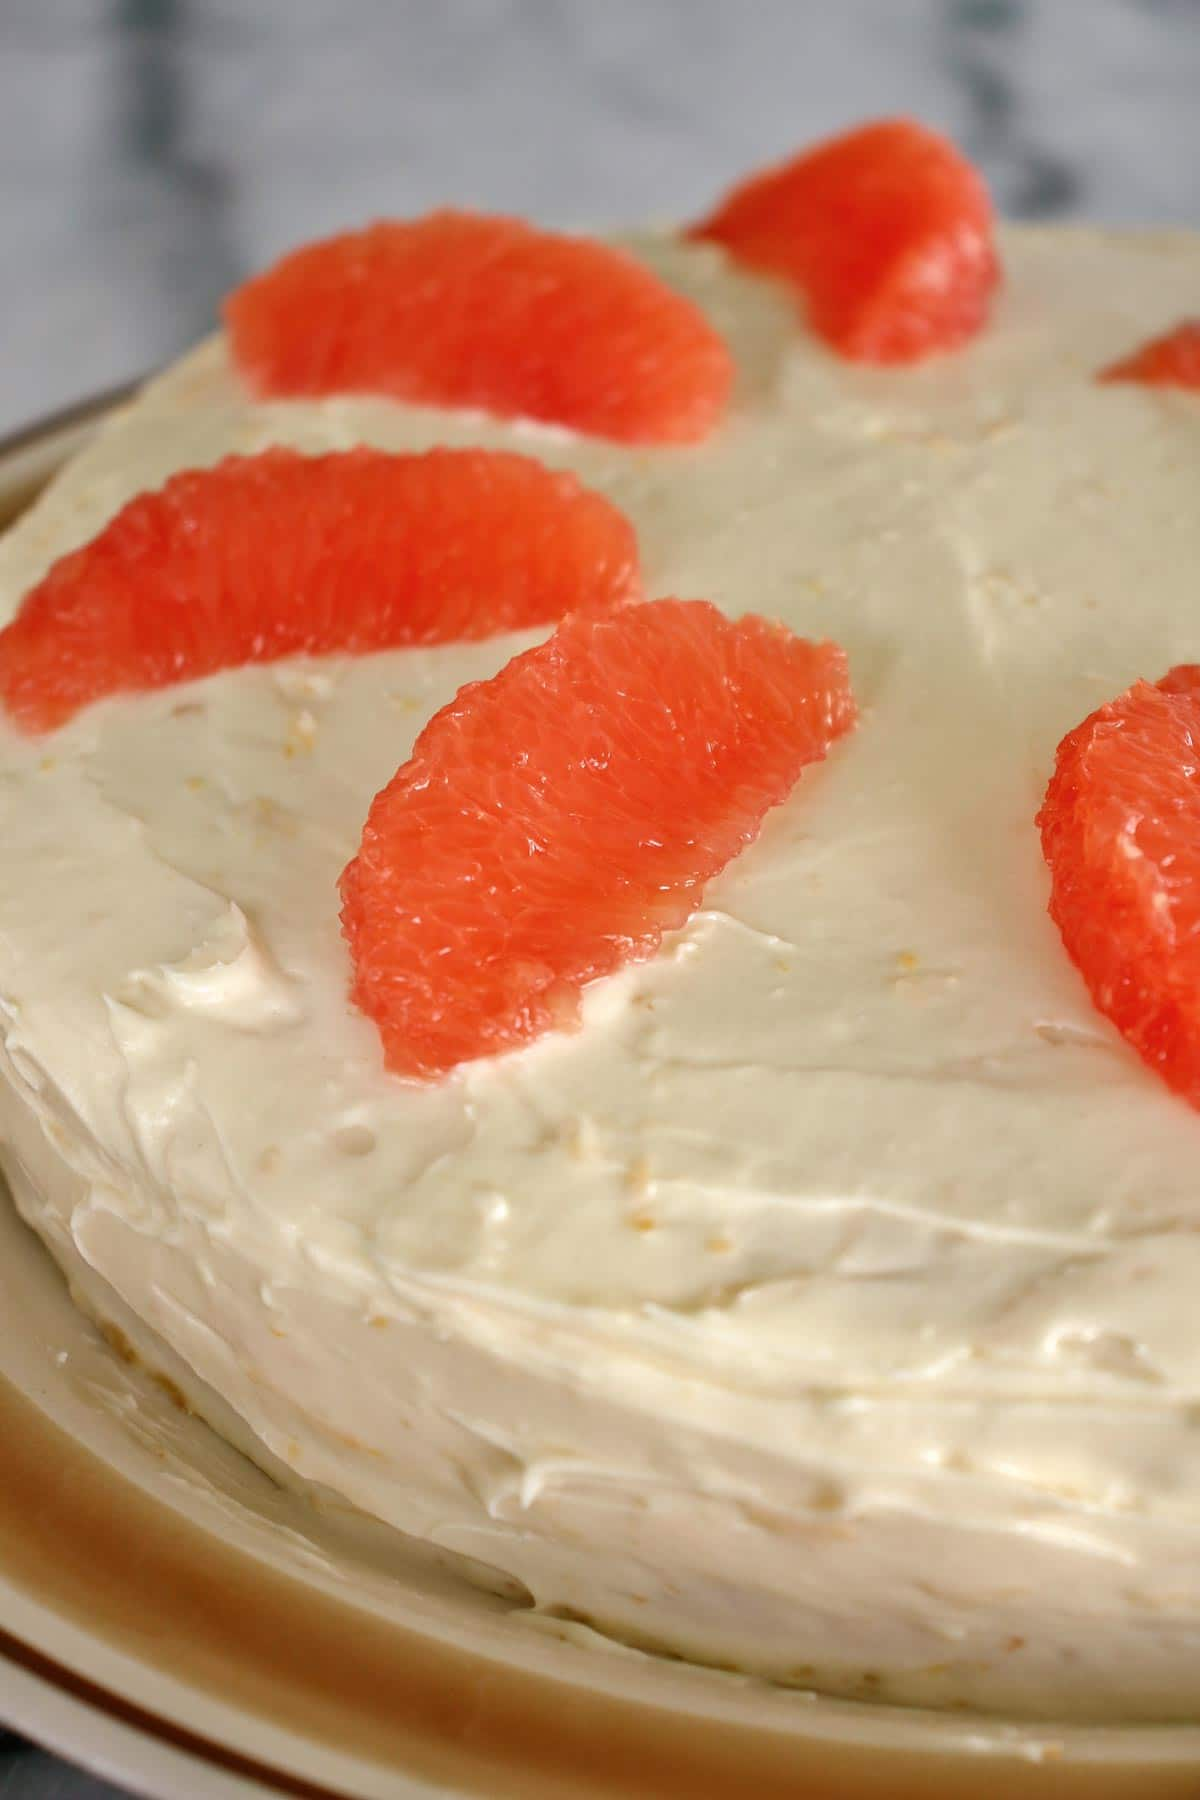 classic Hollywood Brown Derby grapefruit cake with cream cheese frosting and grapefruit